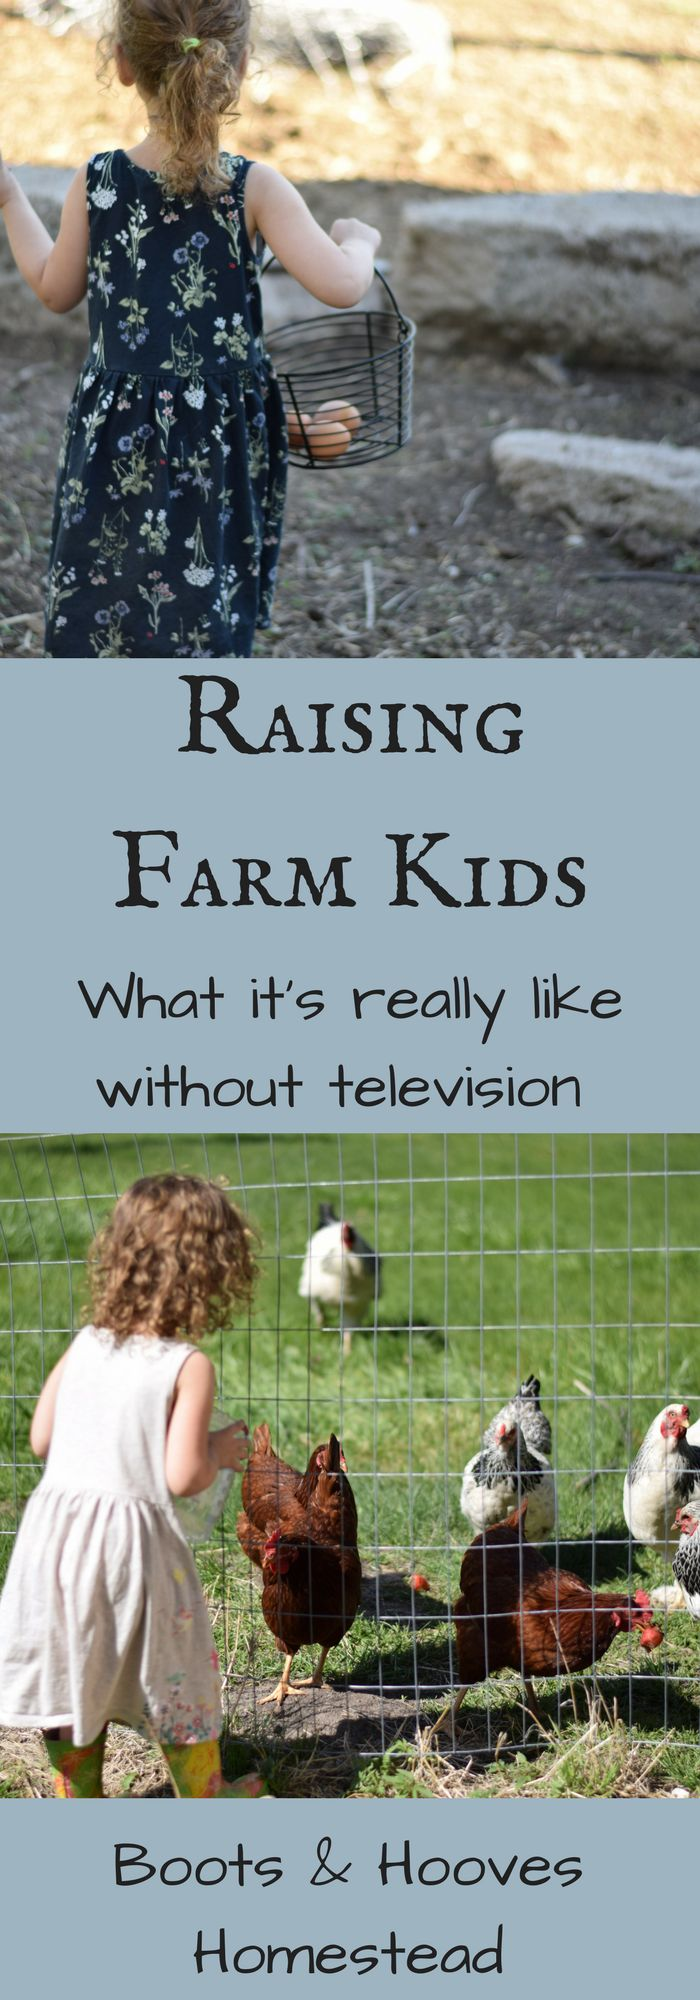 Raising Farm Kids: What it's Really Like Without TV – Boots & Hooves Homestead – Jessica Giesbrecht